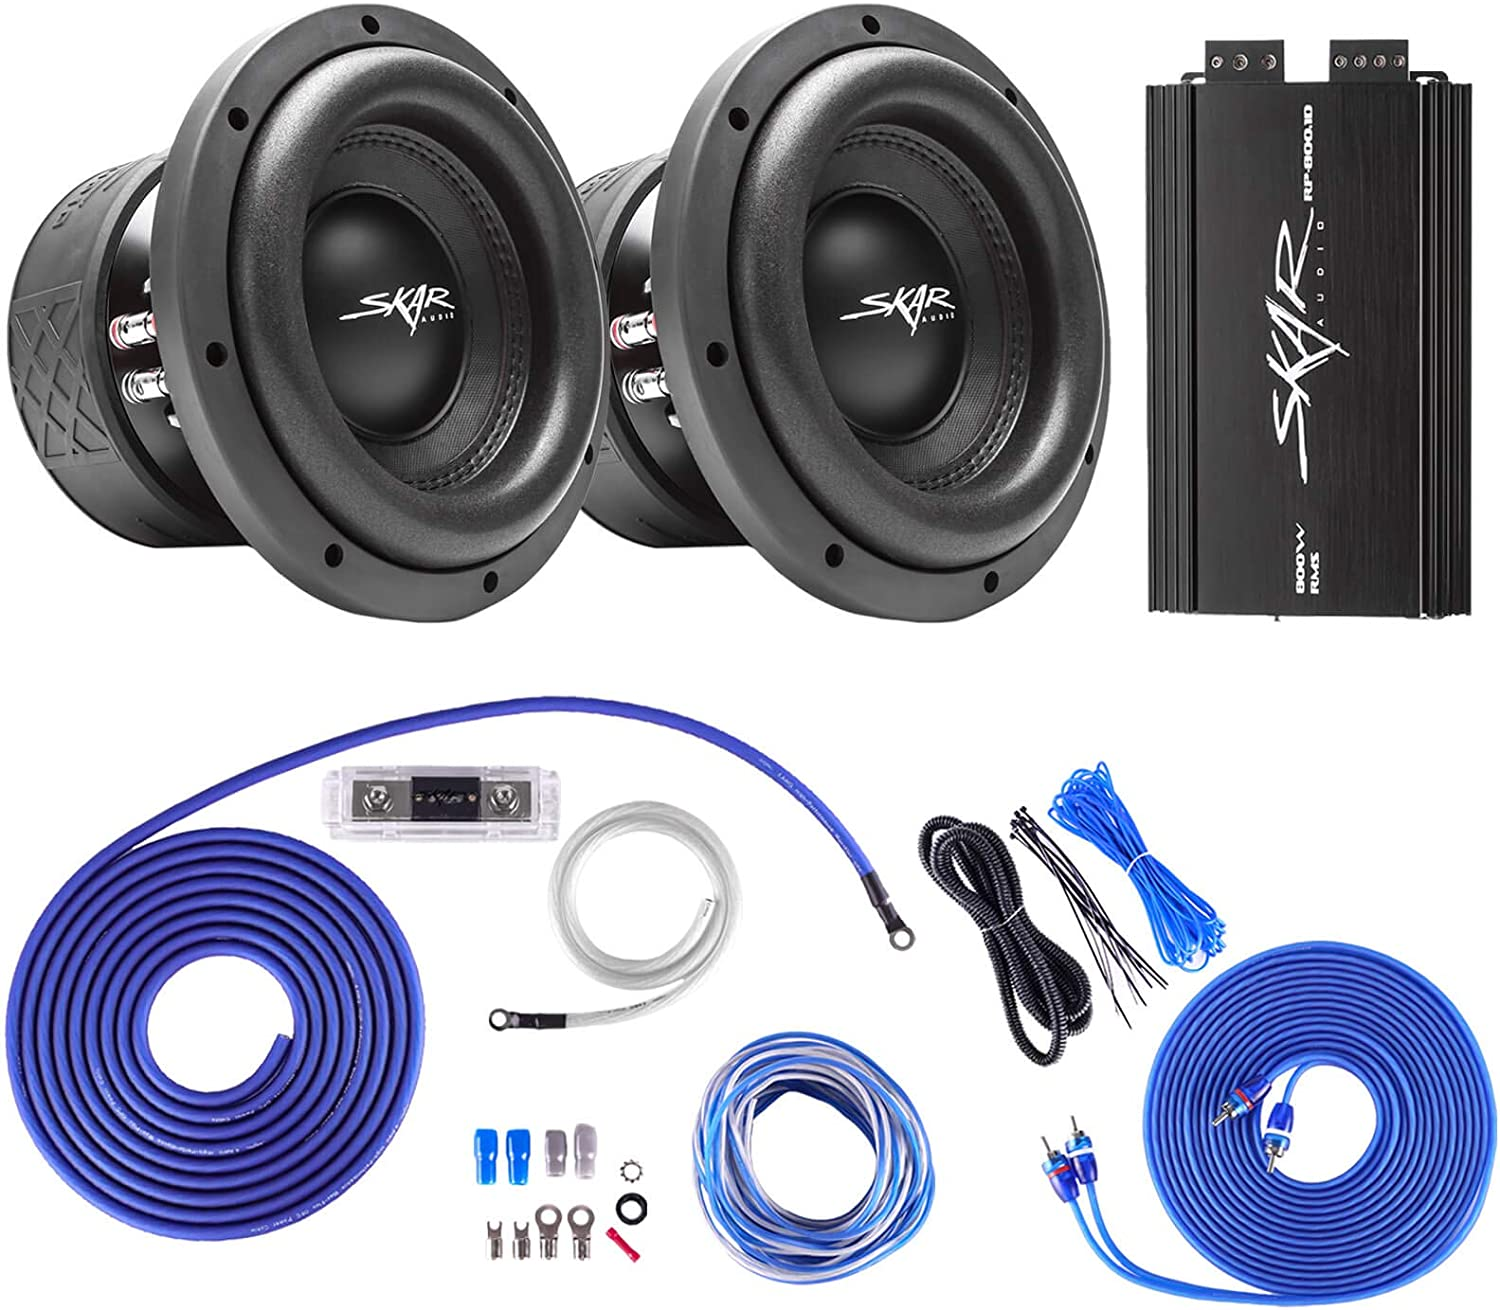 Skar Audio MA-8 D4 Dual 8 800W RMS Subwoofer Package with RP-800.1D Amplifier and 4 Gauge OFC Amp Wiring Kit